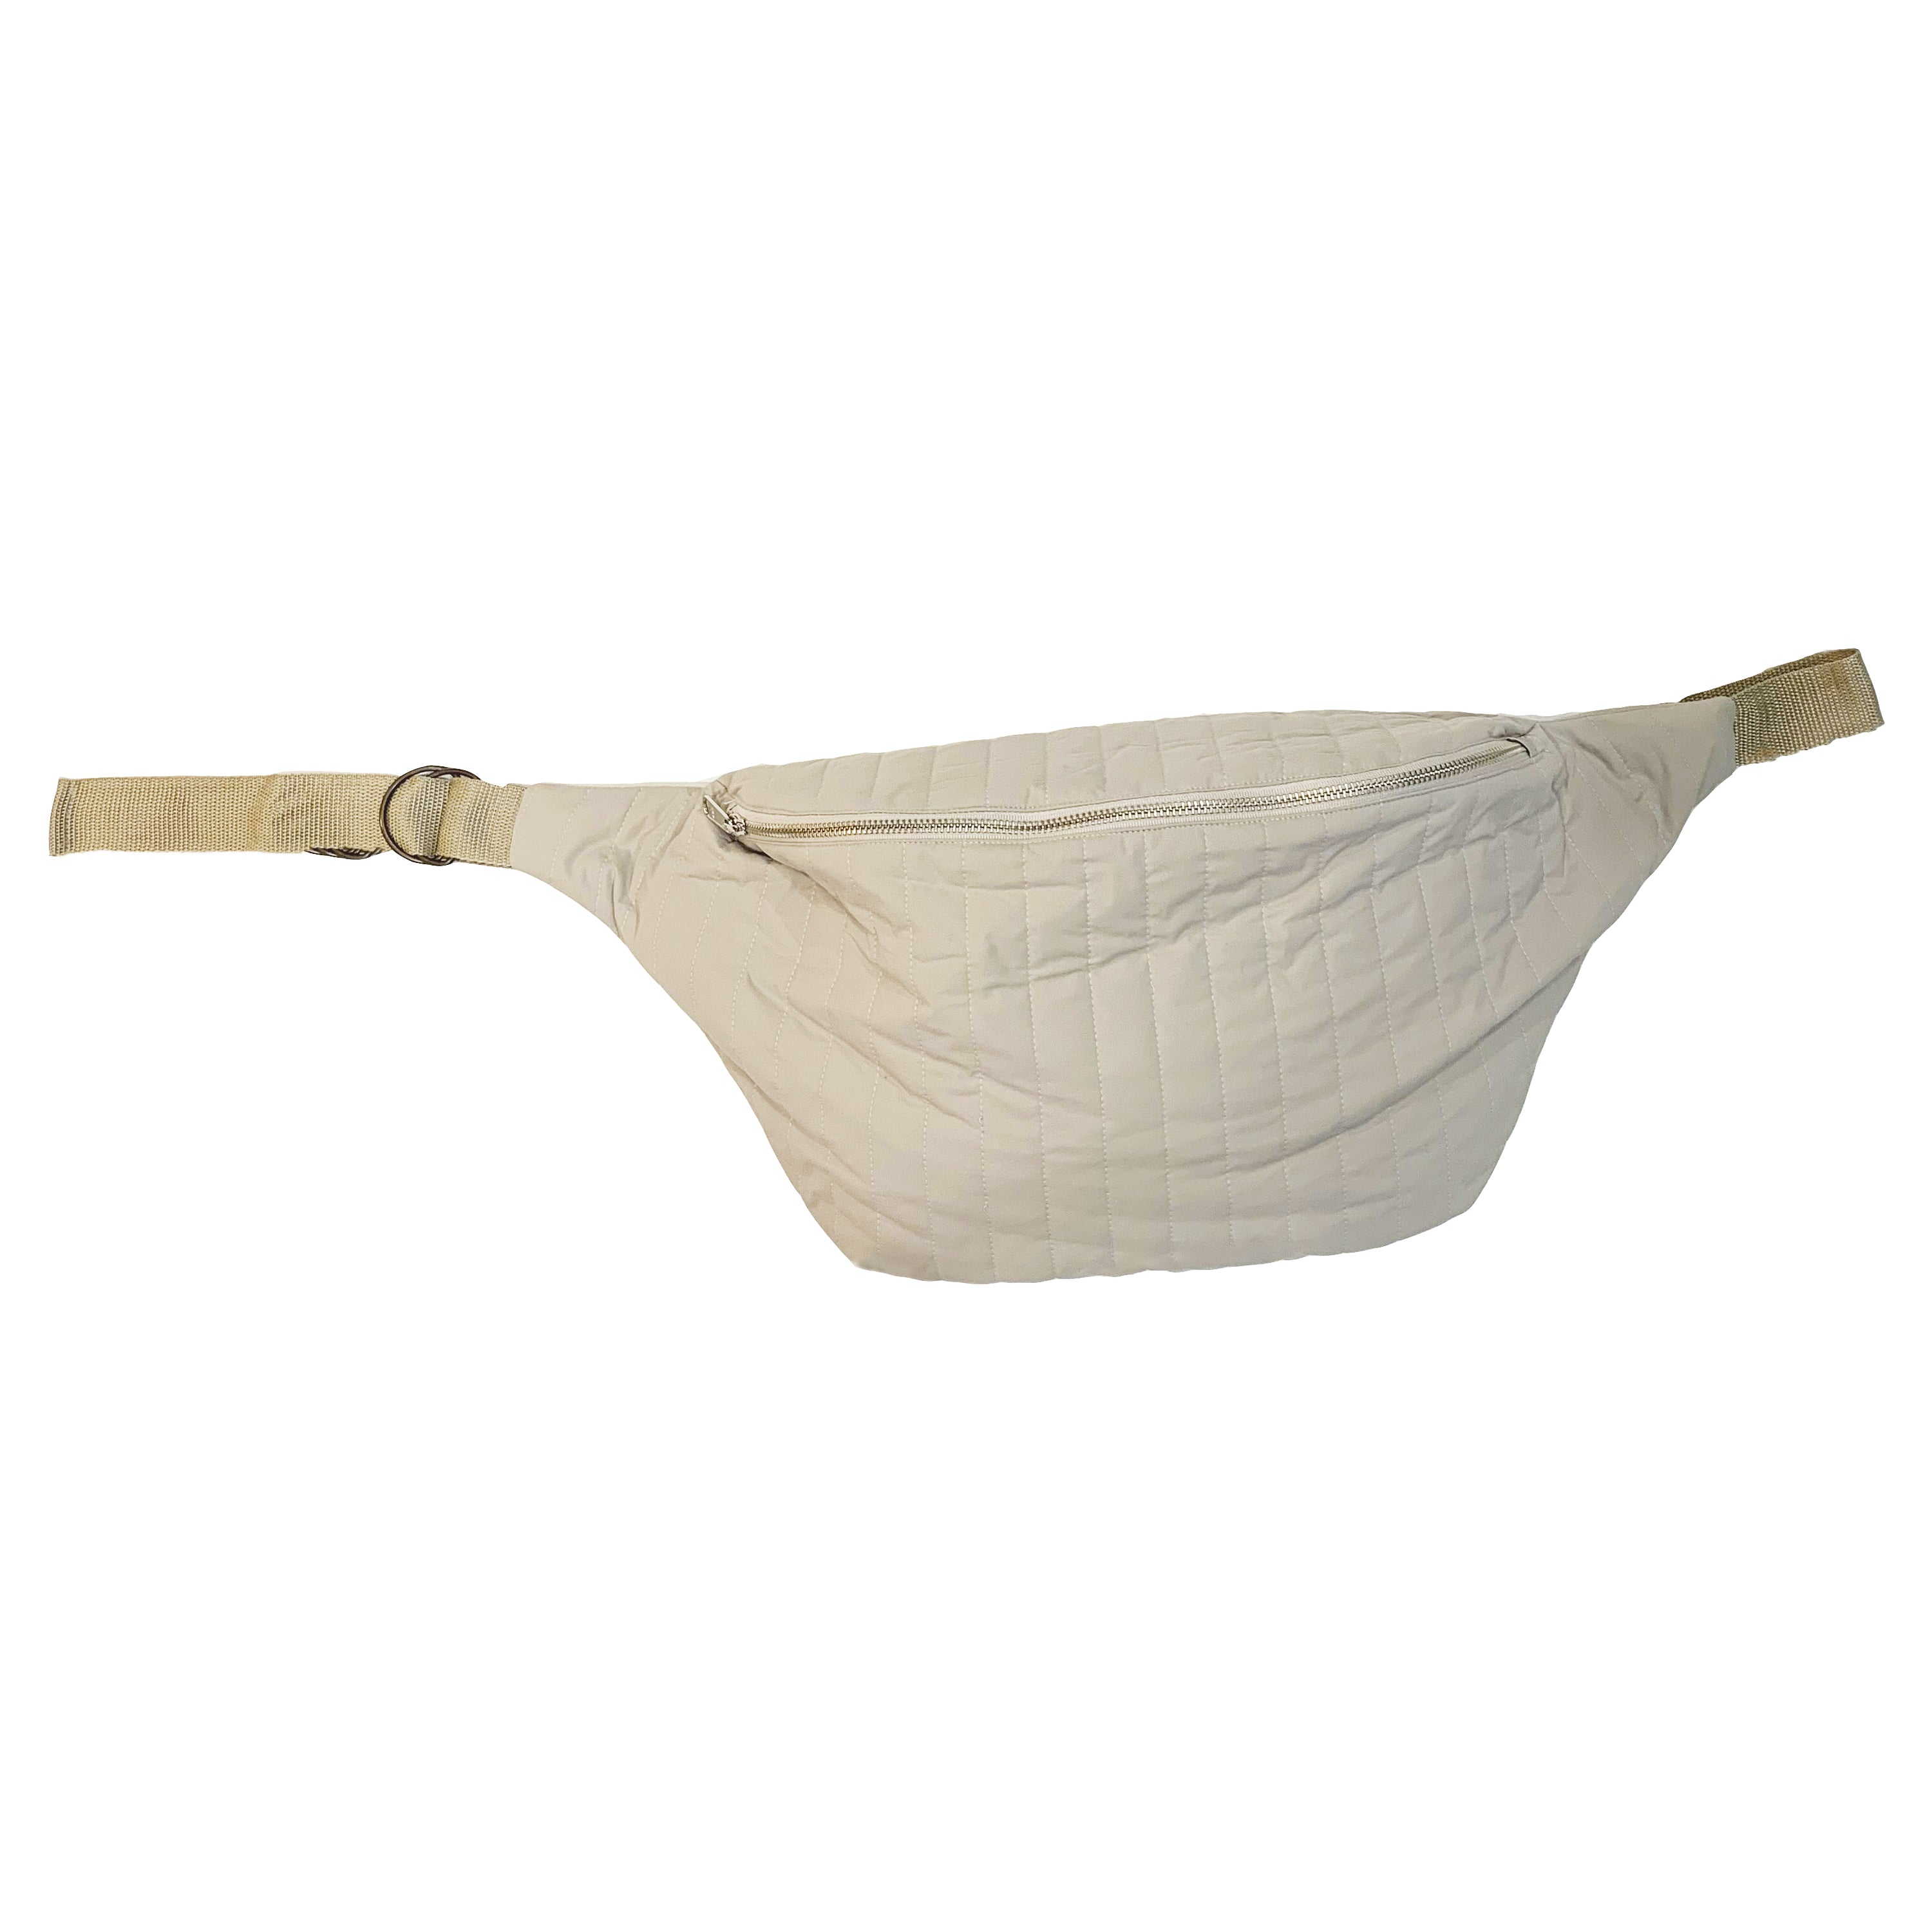 XL Fanny Pack - Tan Recycled Nylon